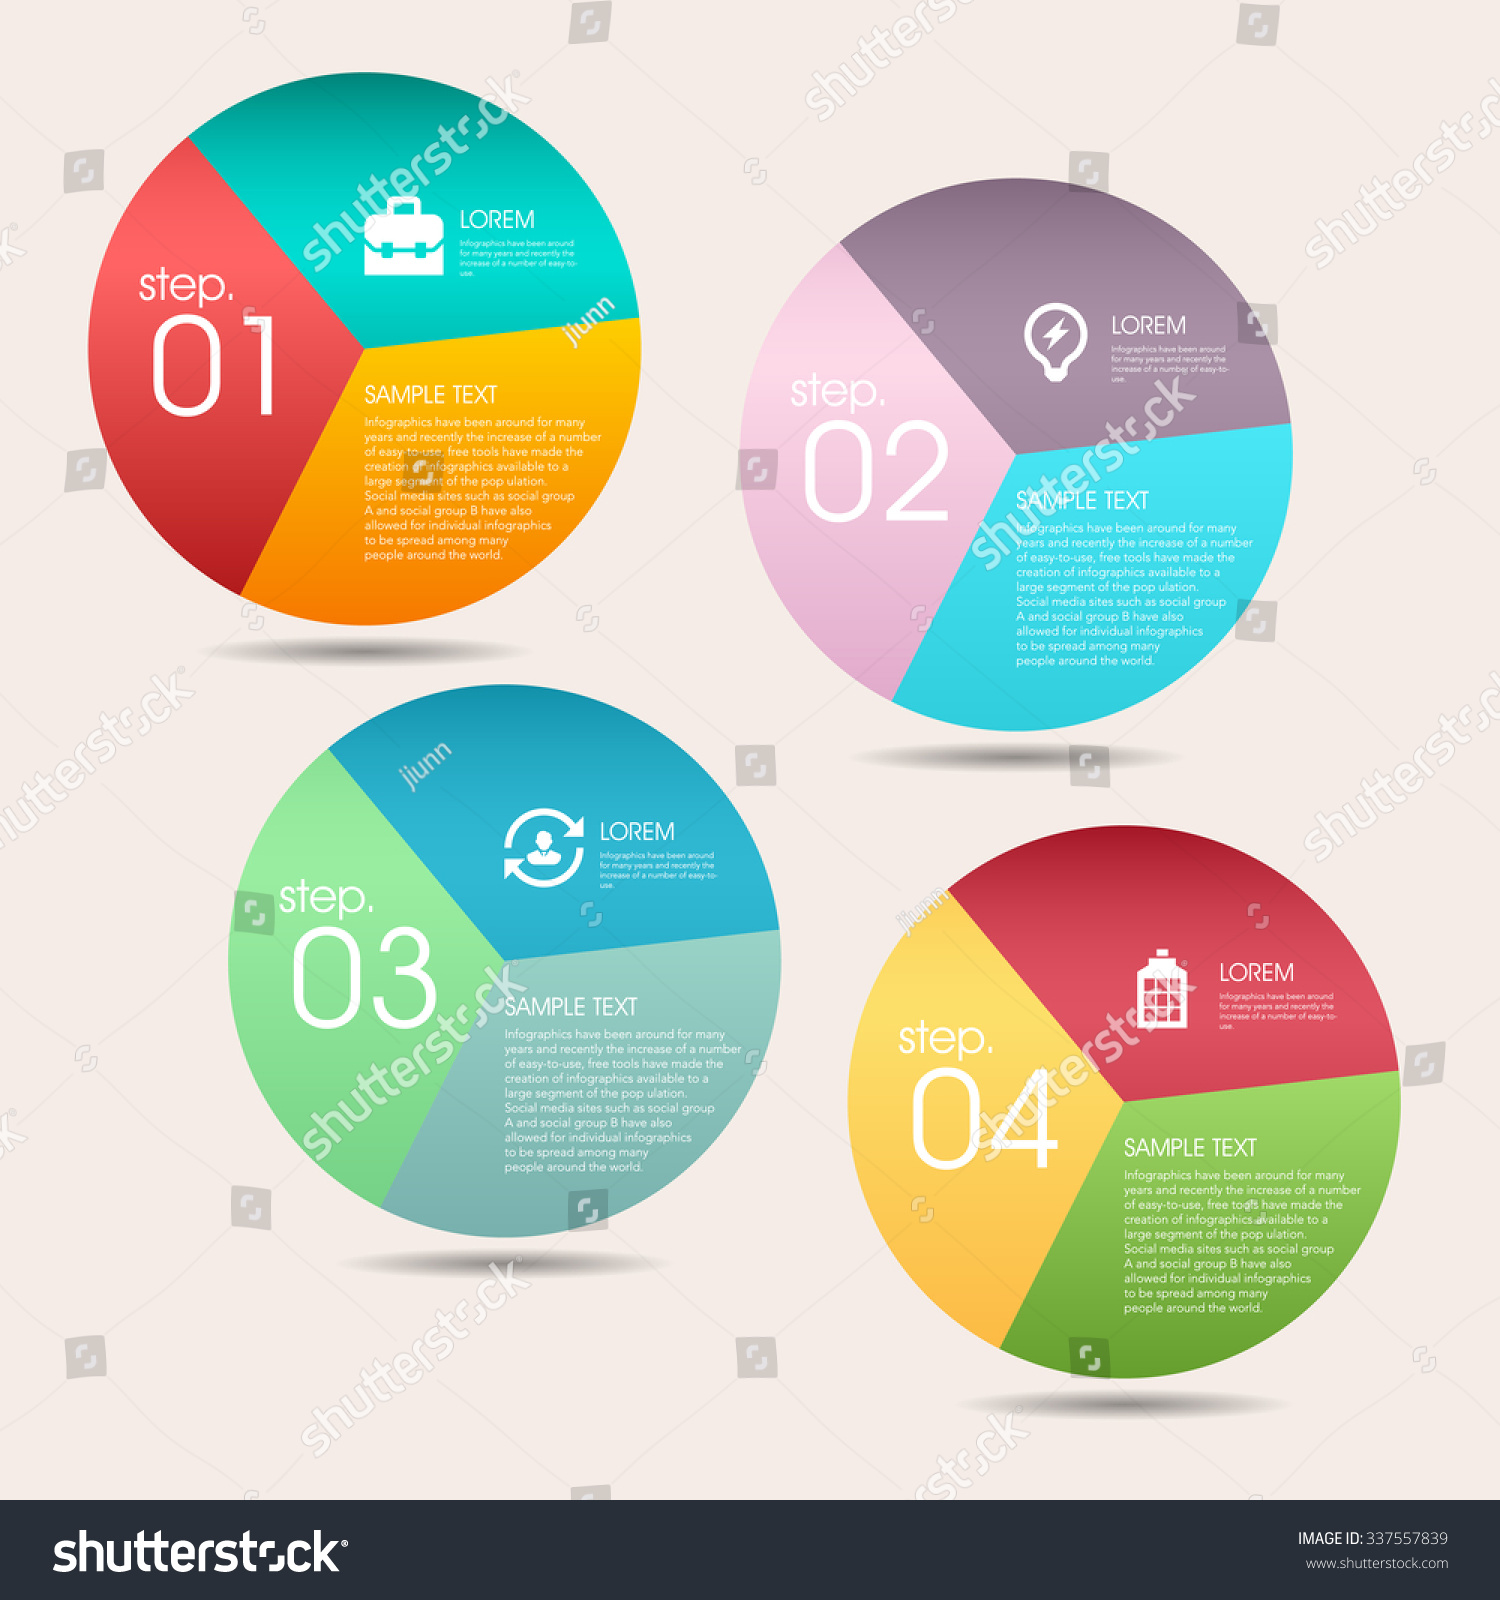 Modern Vector Abstract Pie Chart Infographic Stock Royalty Diagram Elementscan Be Used For Workflow Layout